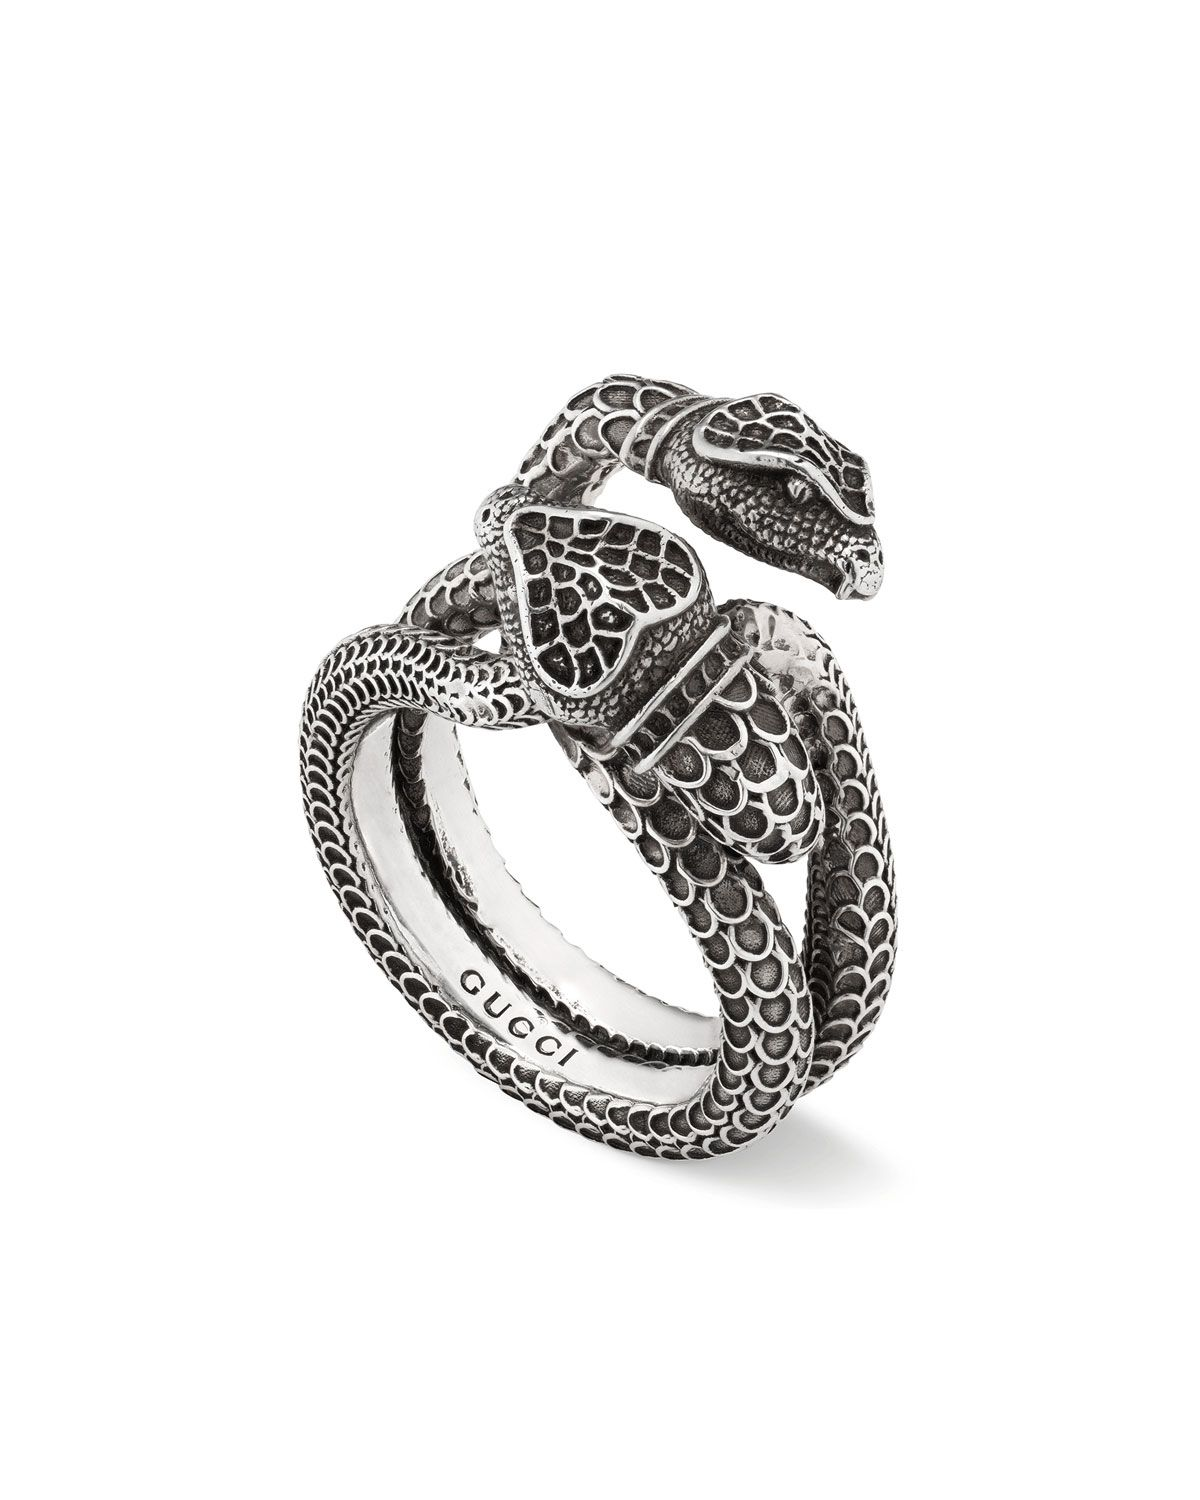 b30618e63 Men's Engraved Snake Ring Size 10.5 in 2019   Products   Snake ring ...